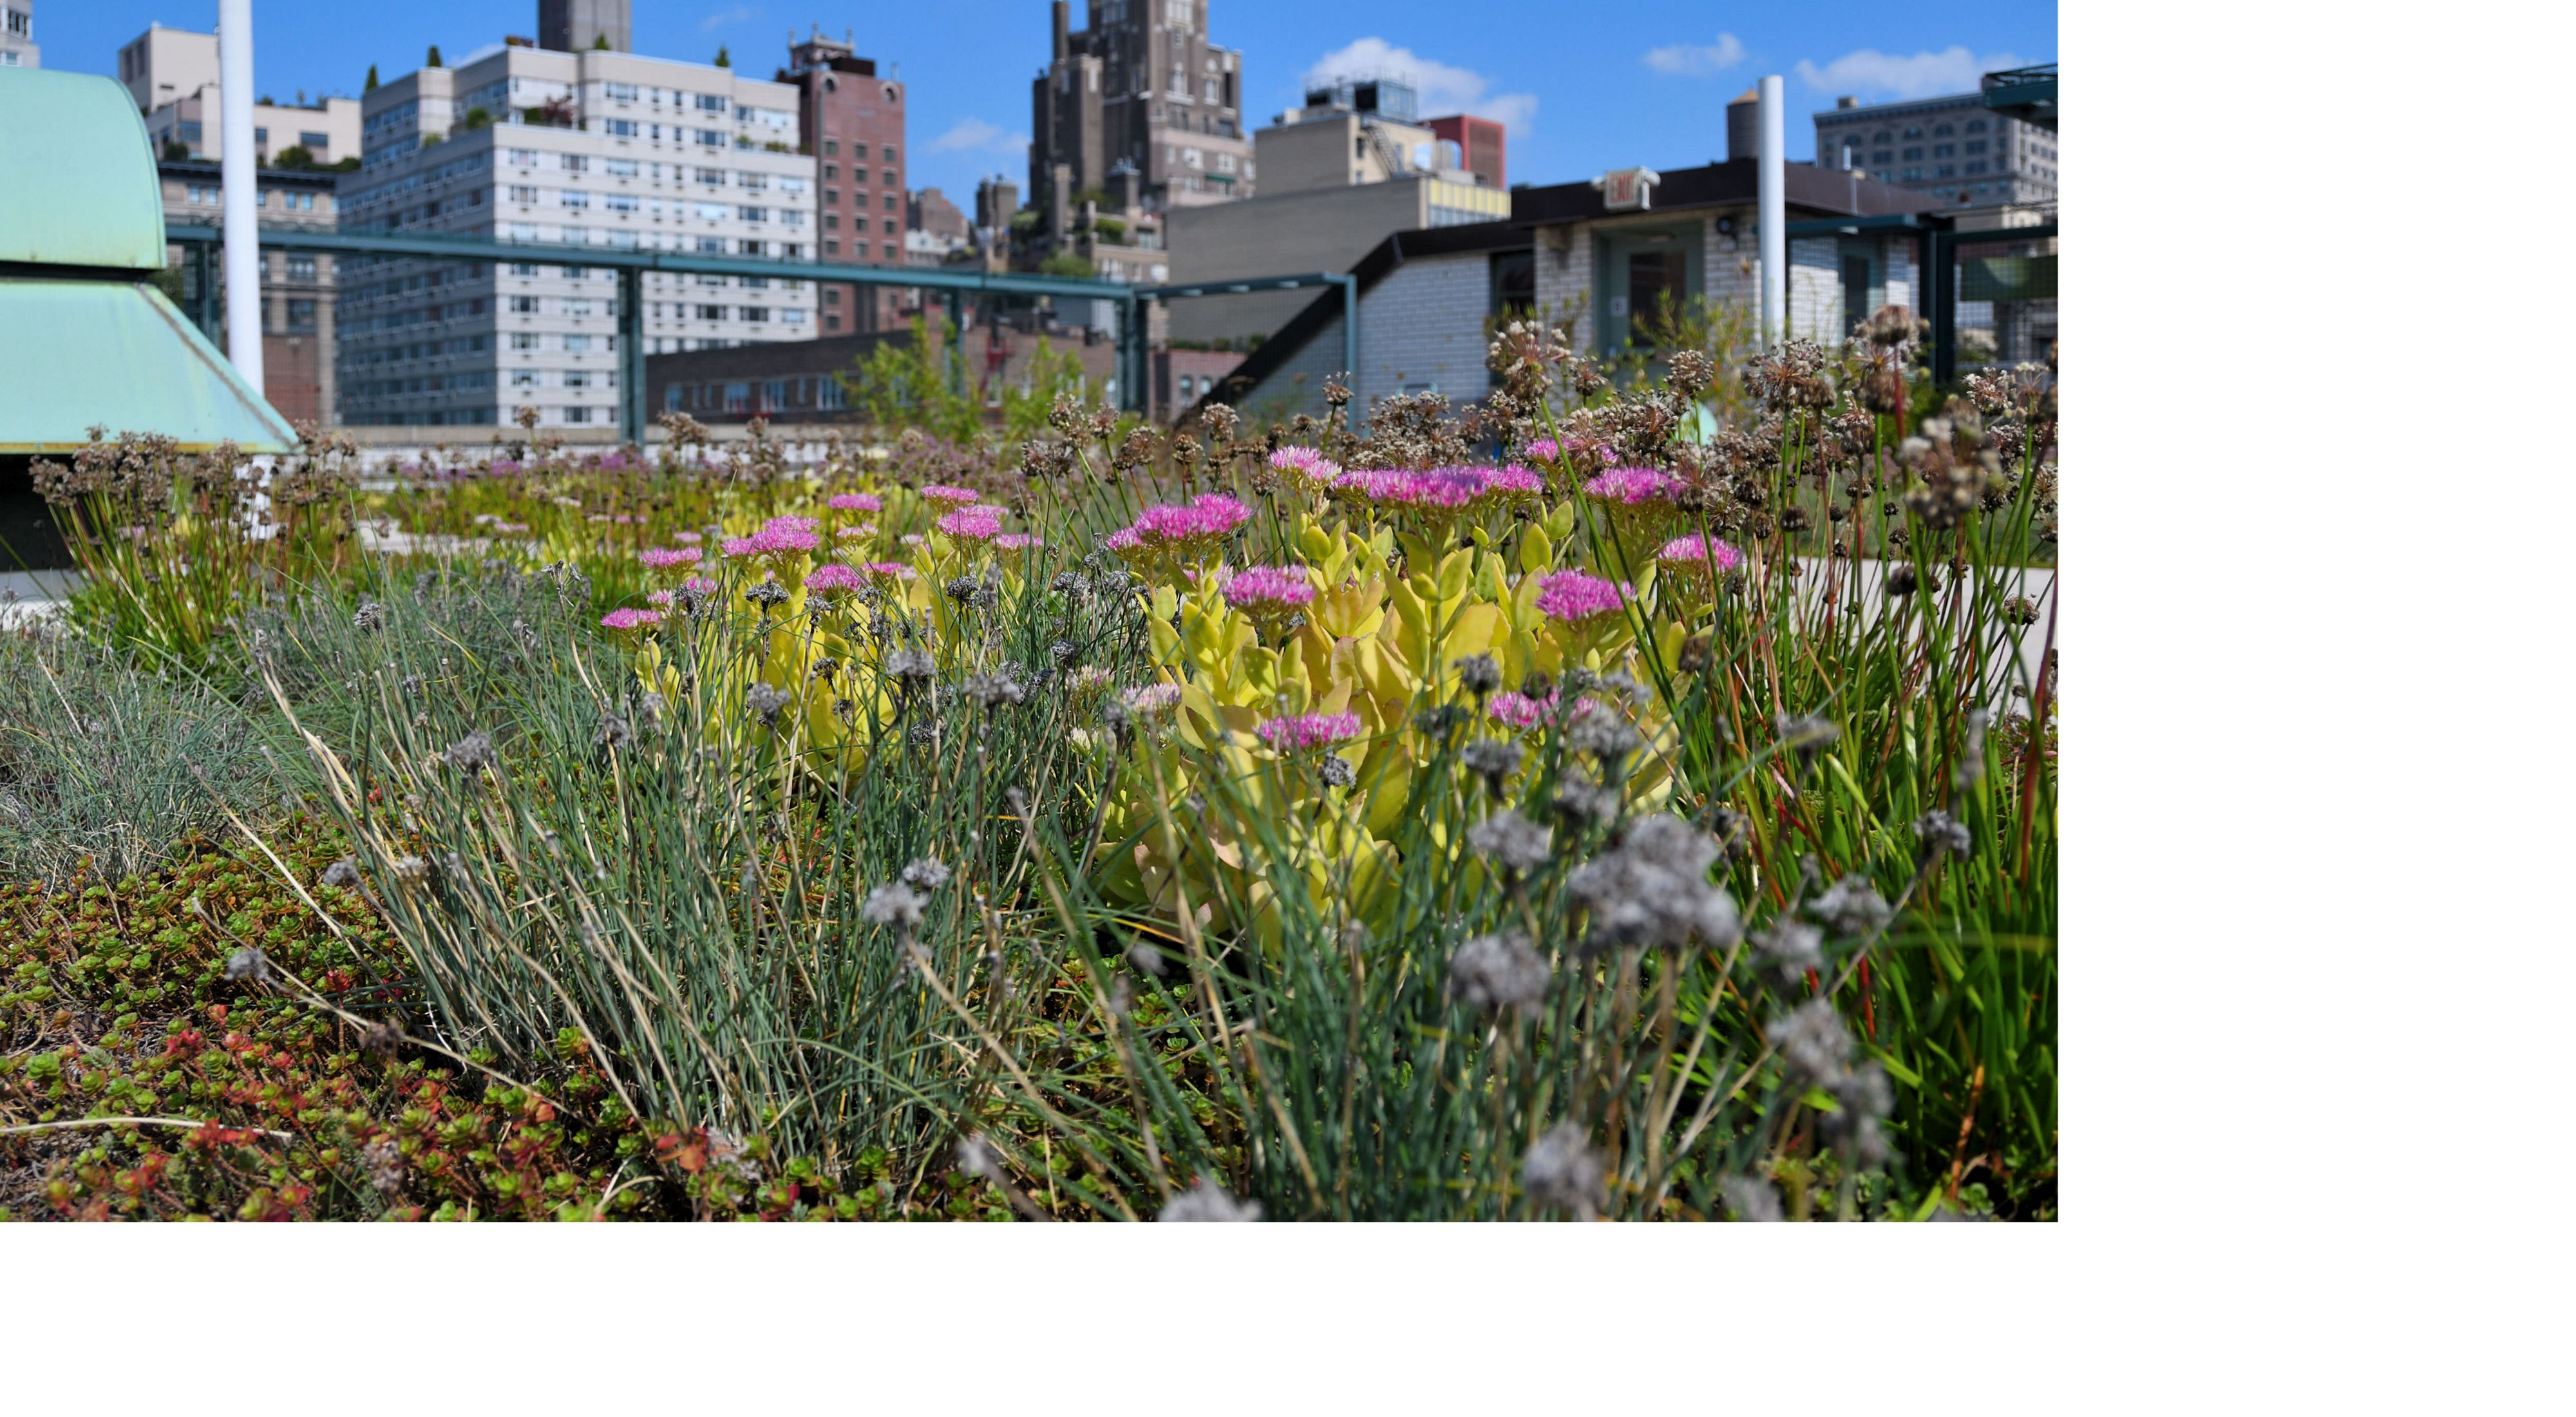 Green roof in New York City